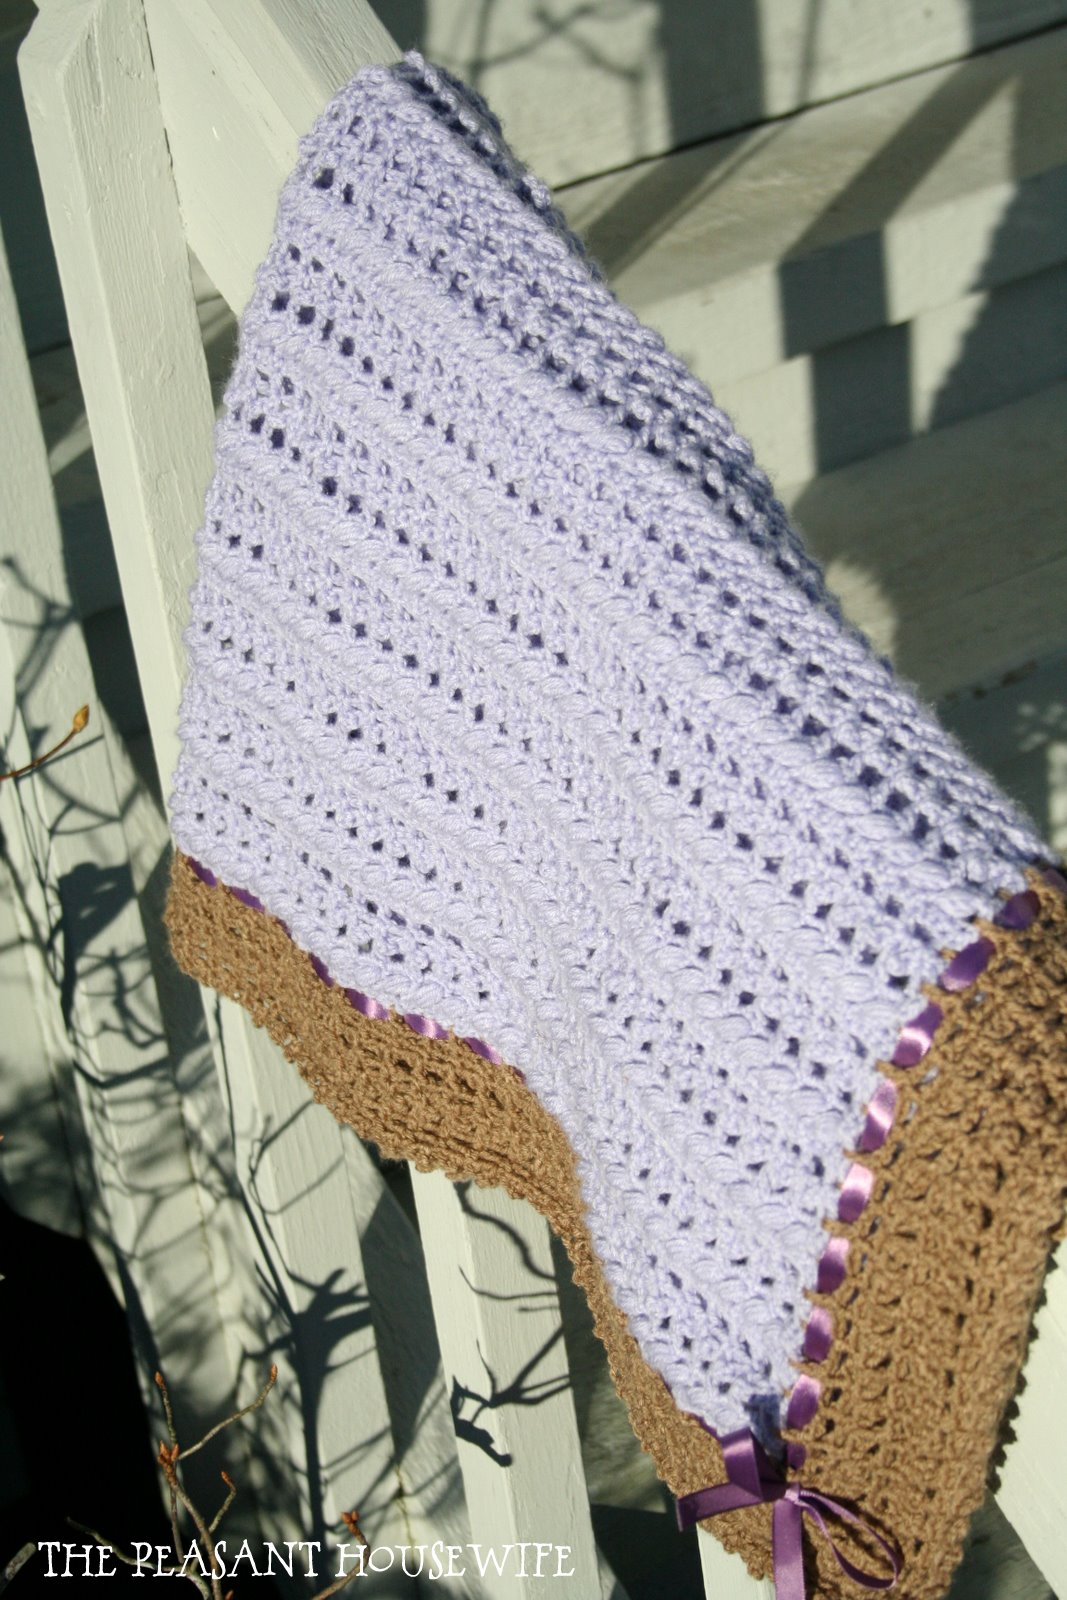 Crochet Baby Blanket - Compare Prices, Reviews and Buy at Nextag